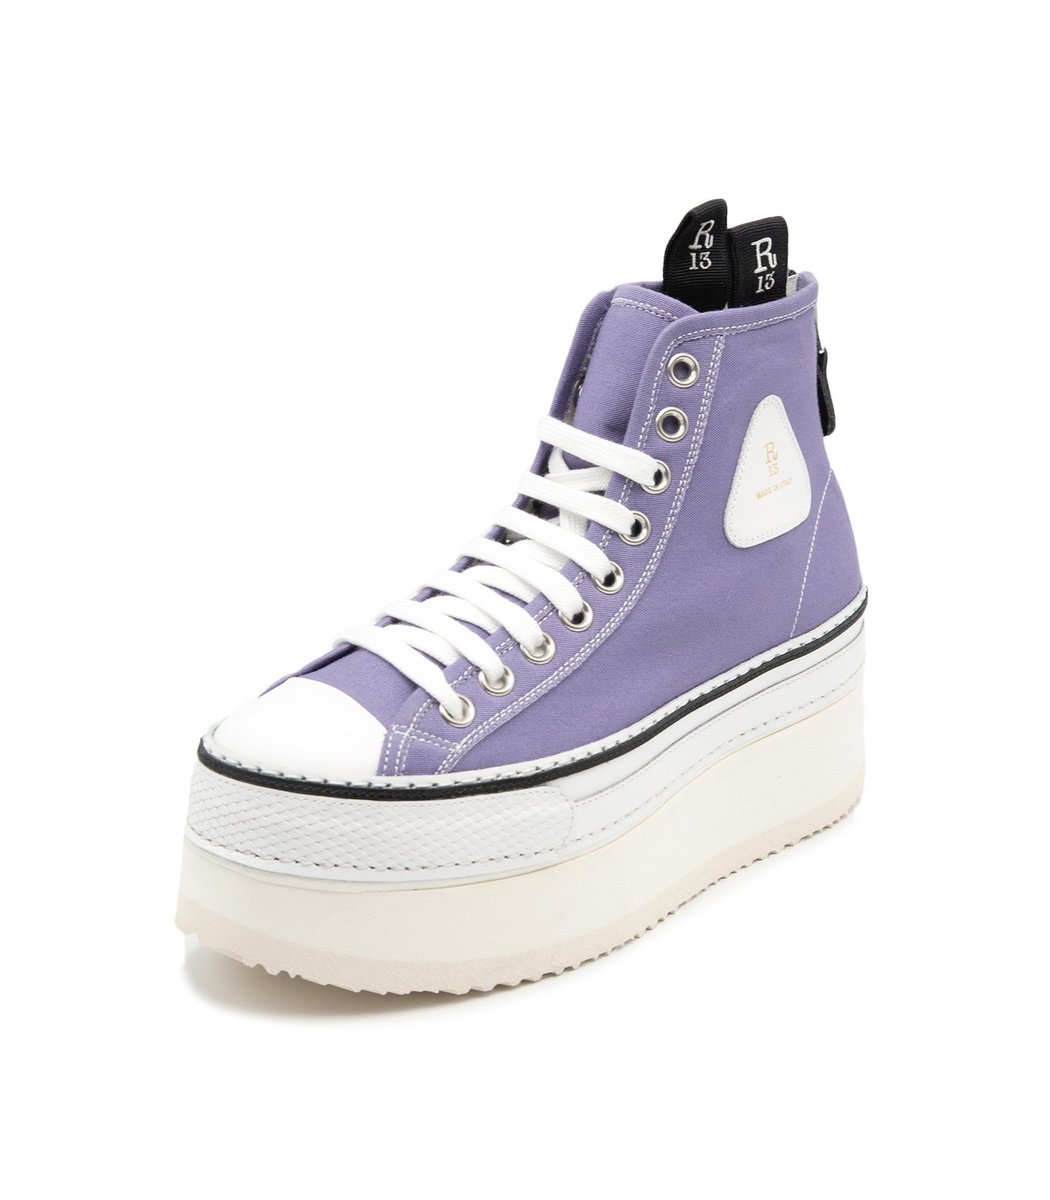 R13 Canvases Platform High Top Sneaker in Lilac